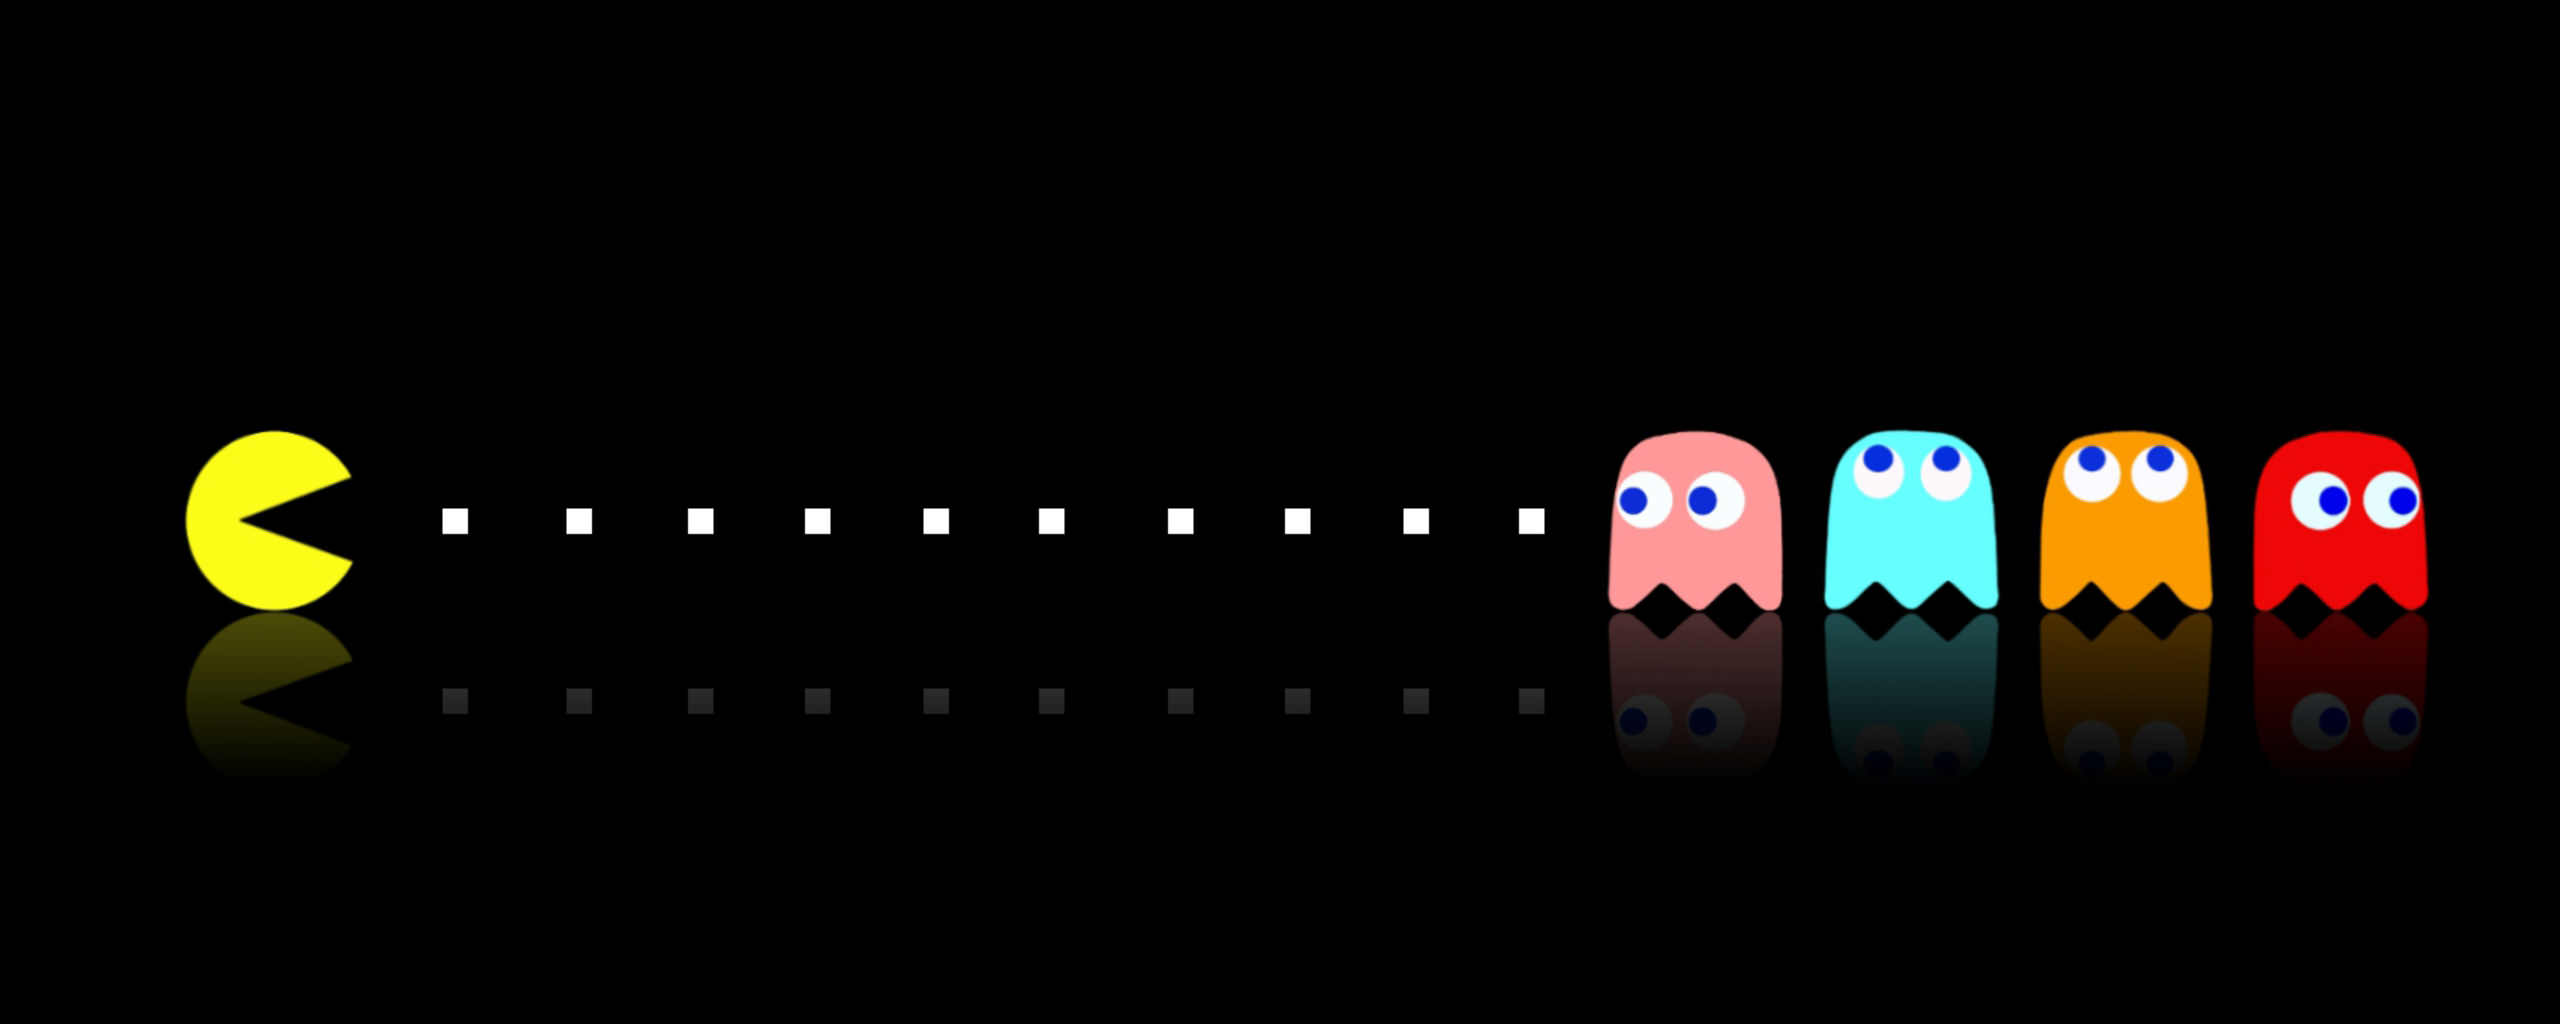 Fantastic Wallpaper Music Dual Monitor - pacman2560x1-24  Gallery_195320.jpg